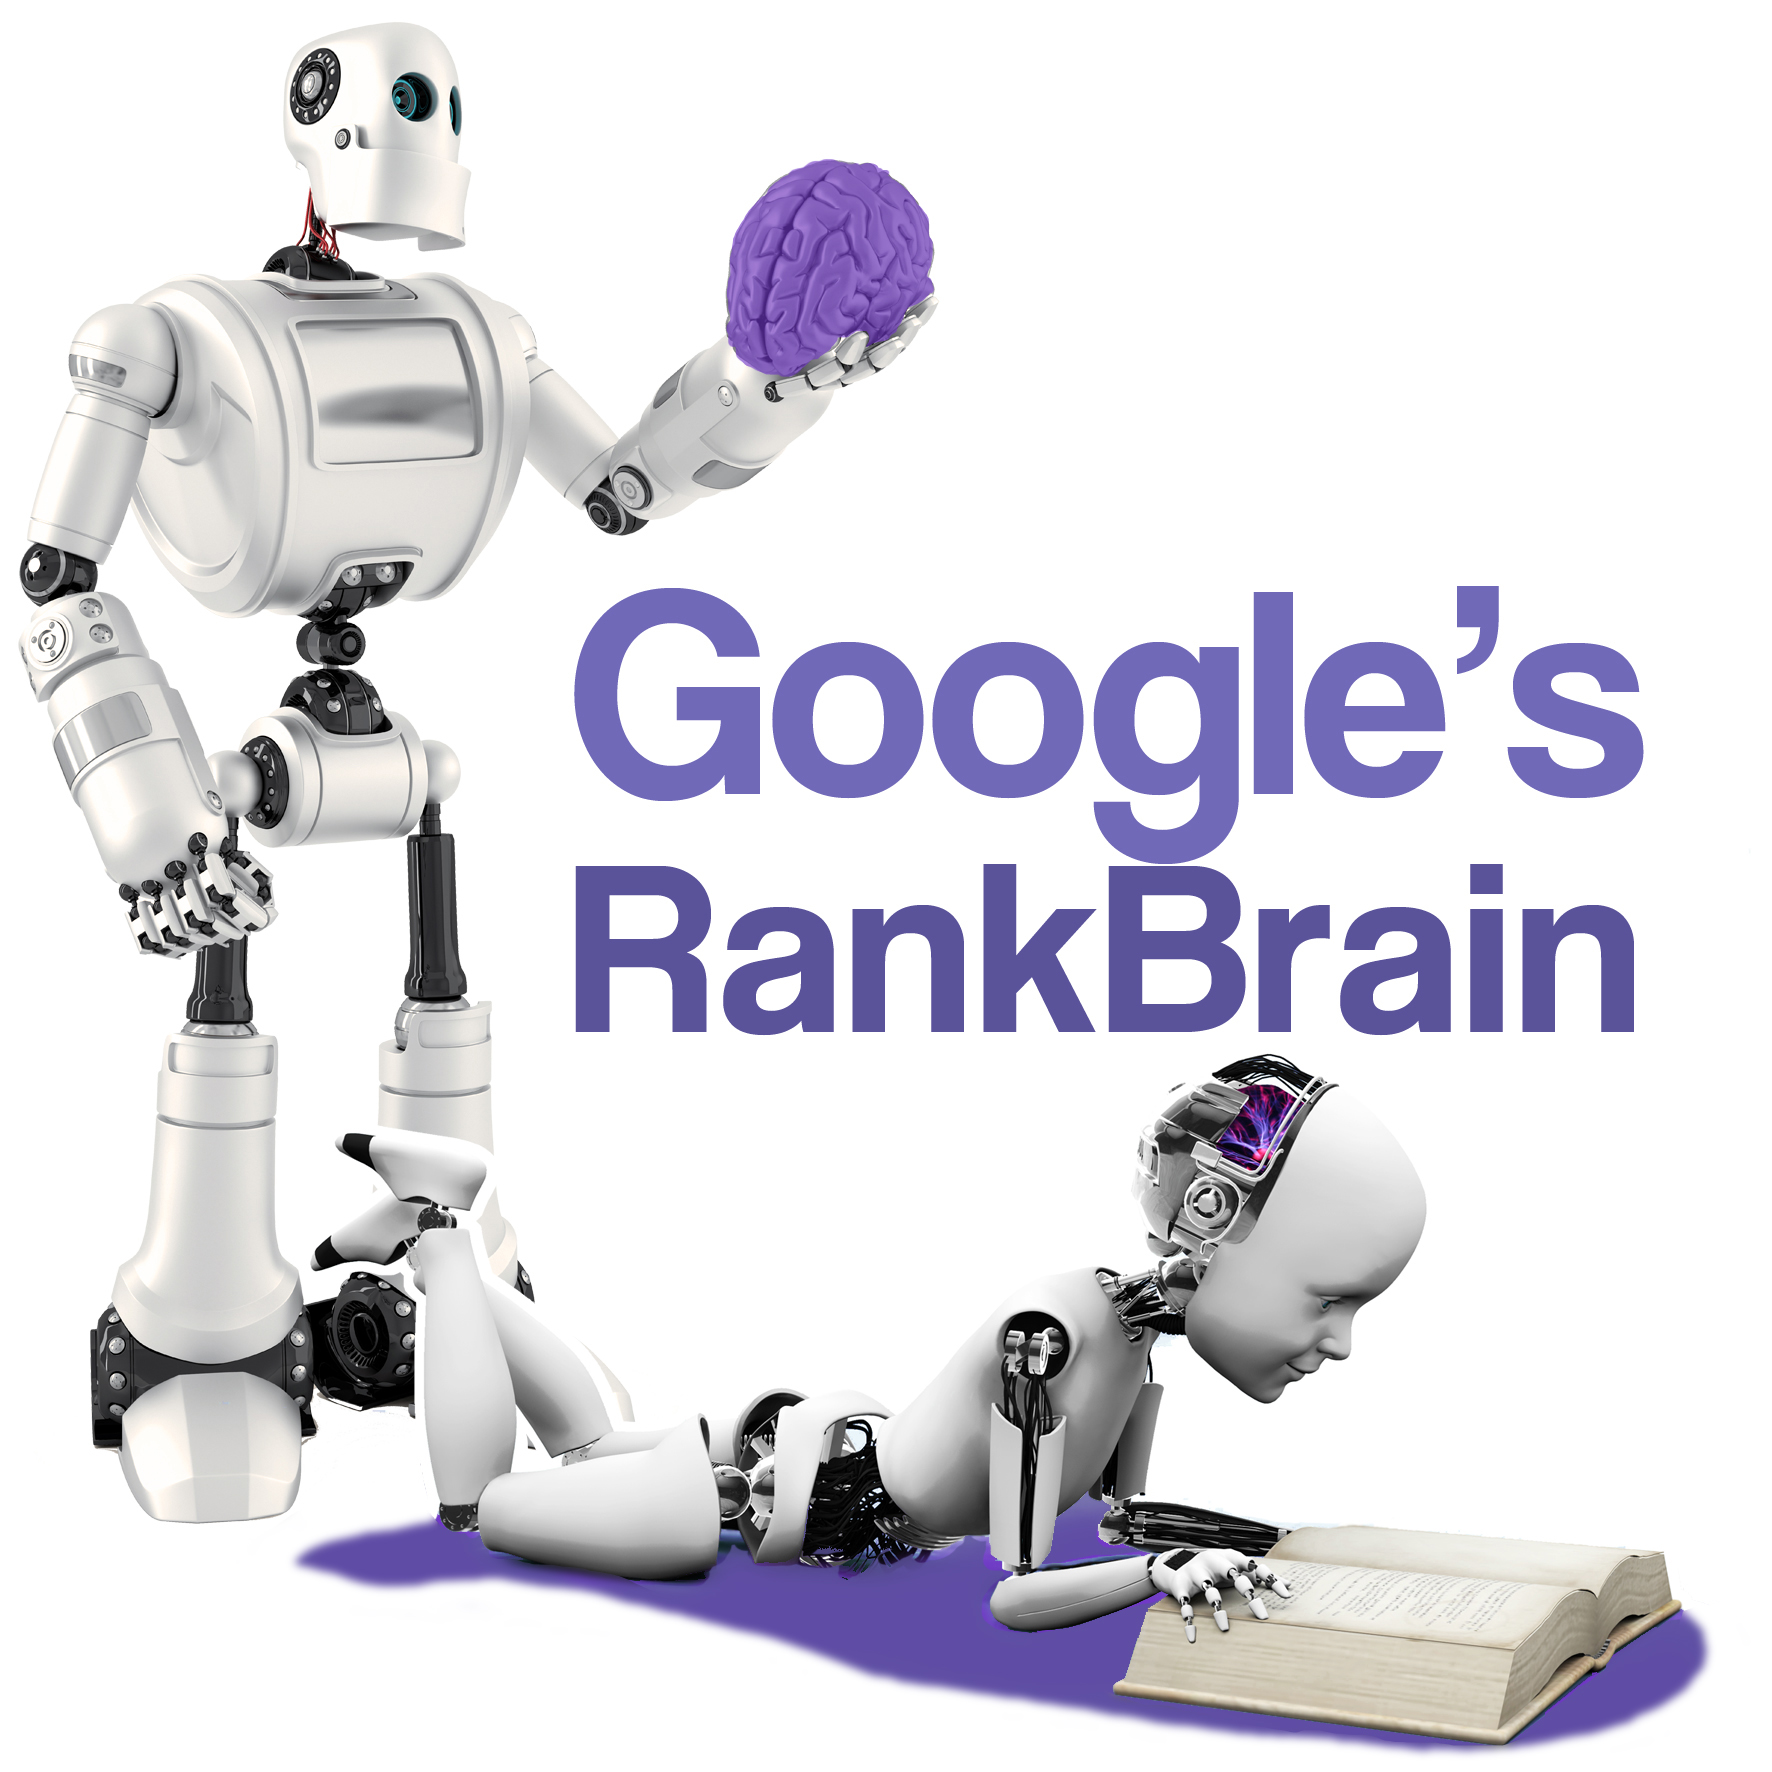 Google's RankBrain - The AI algorithm for SEO